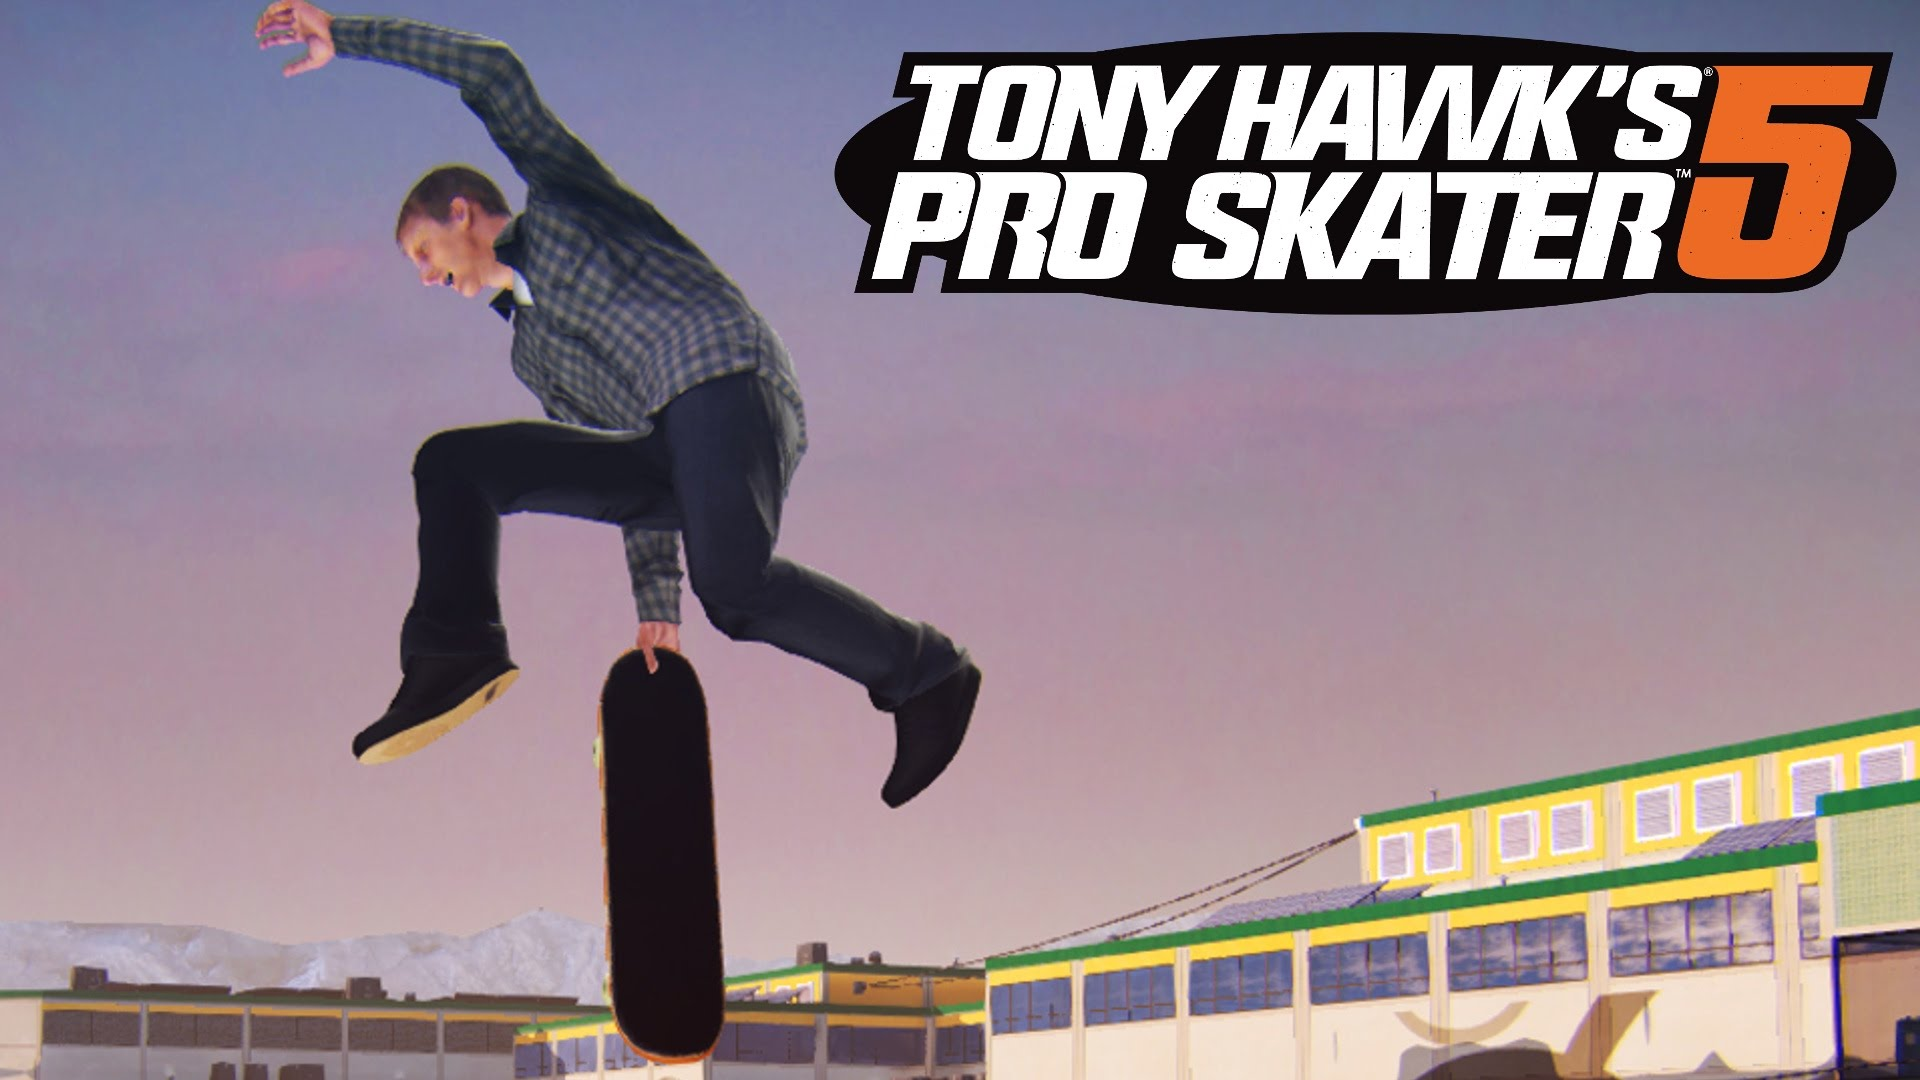 Tony Hawk's Pro Skater 5 – Heading to PS4 & Xbox One this September